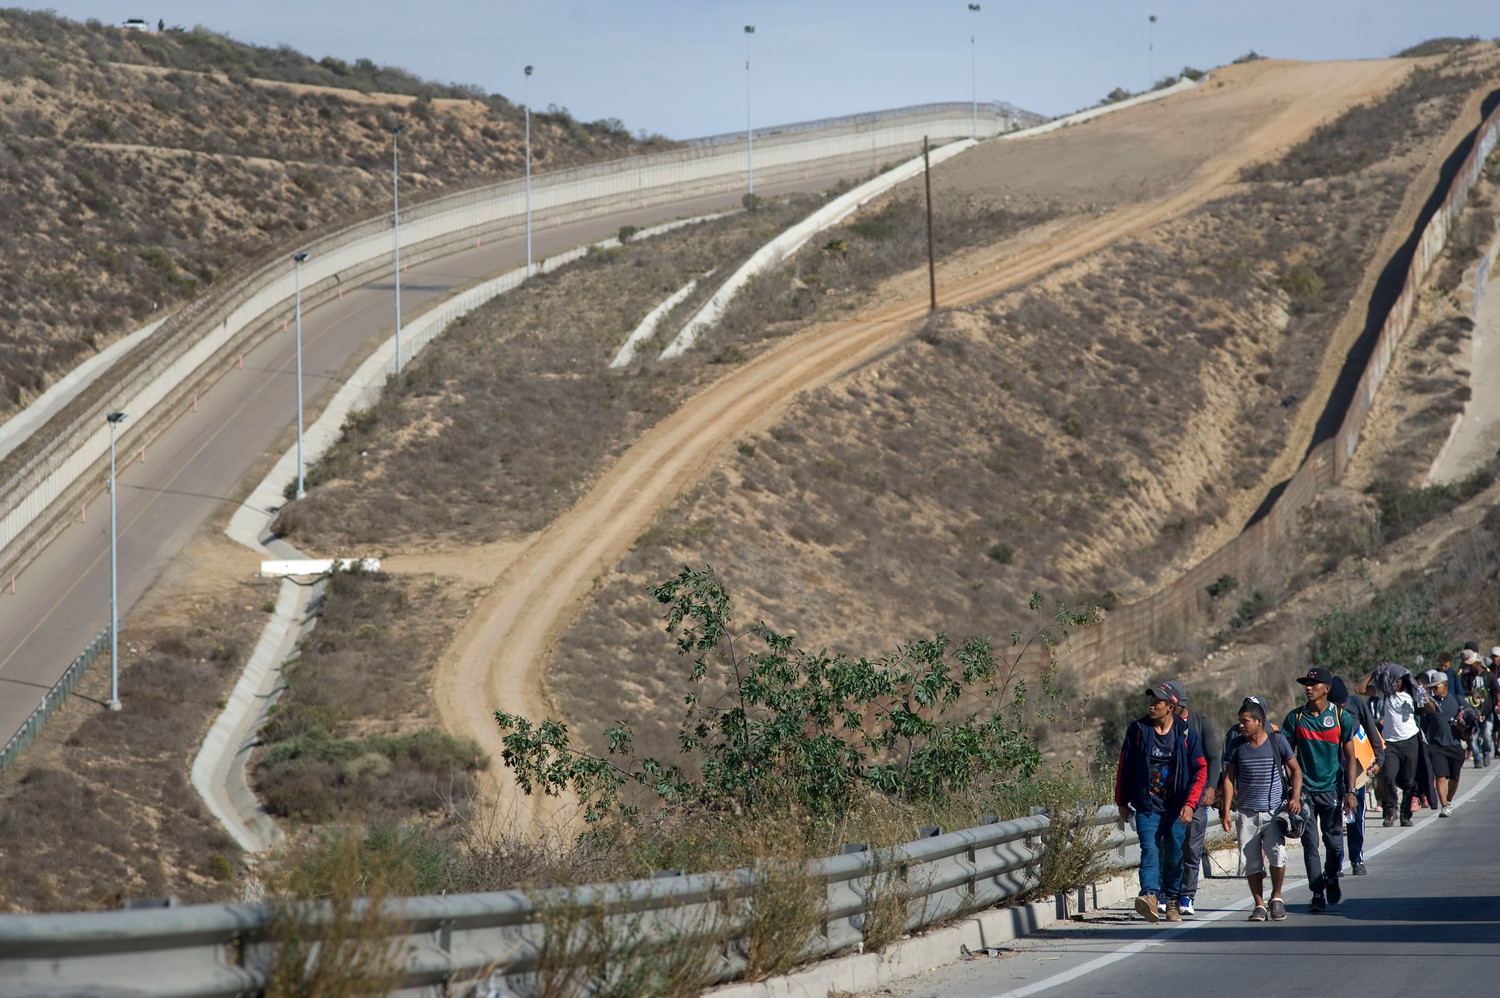 A group of about 350 Central American migrants walk along the highway toward the beach Nov. 13 after arriving in Tijuana, Mexico. The group split from and advanced ahead of a larger caravan making its way to the border.